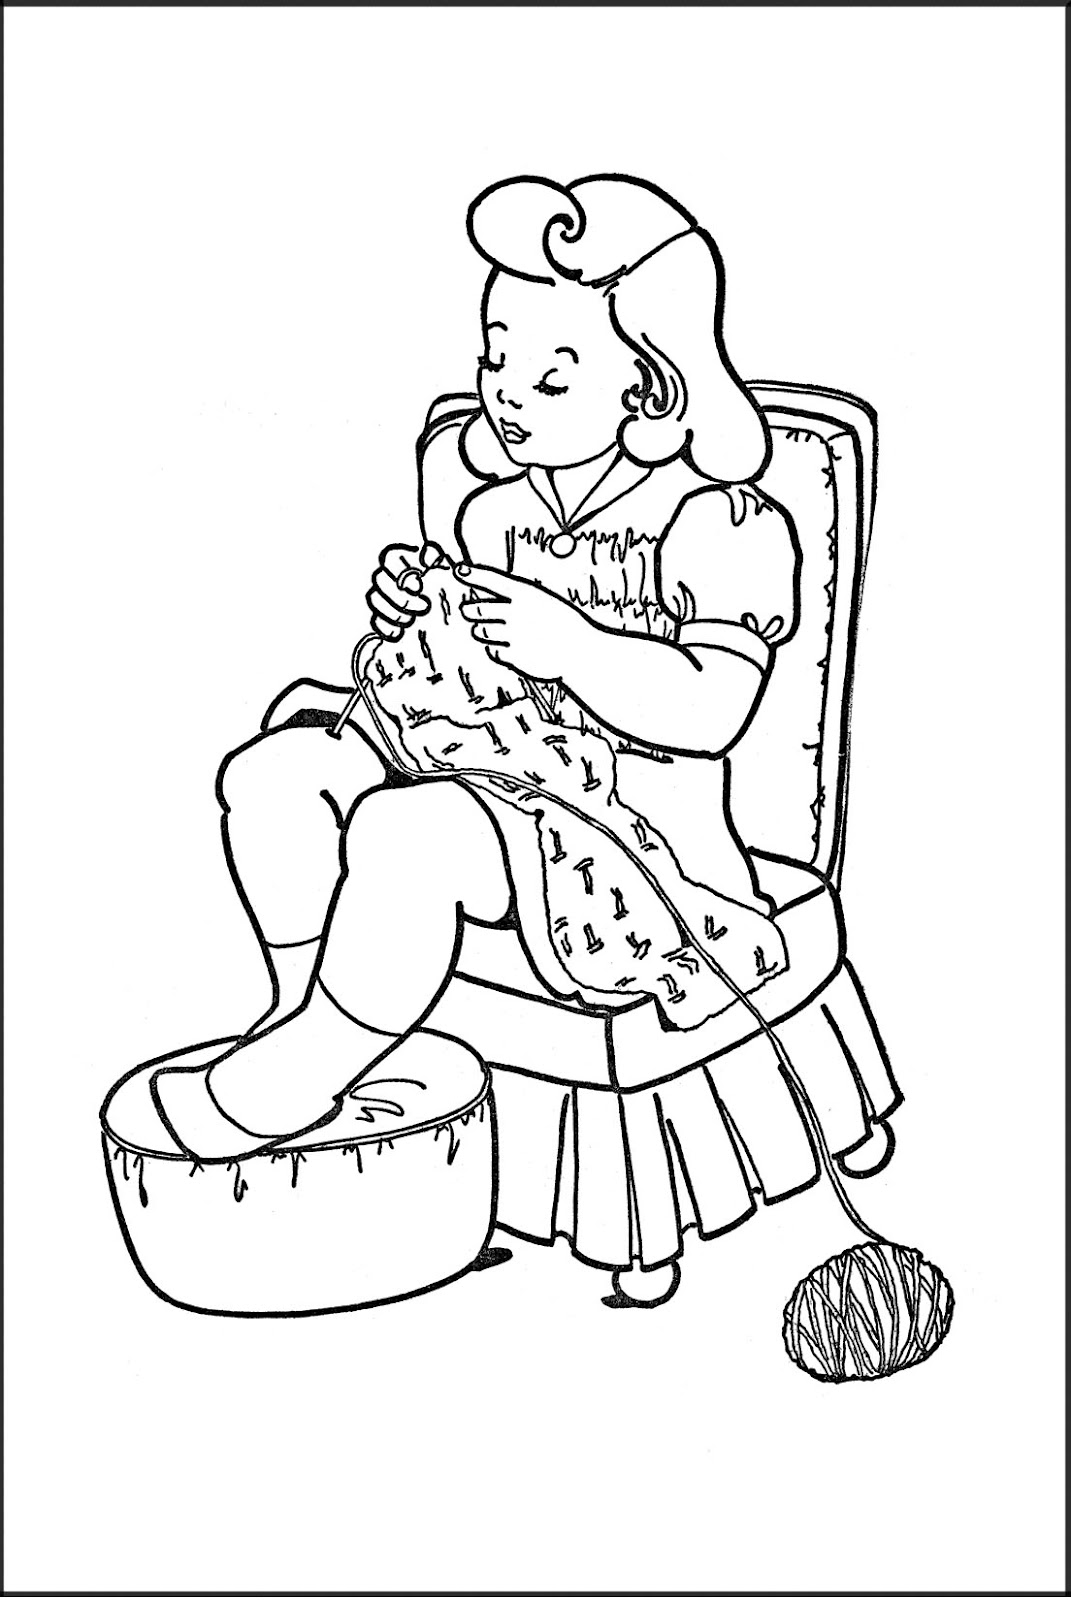 Brownie Elf Coloring Page http://genuardis.net/fairy/fairy-elf-coloring-page.htm